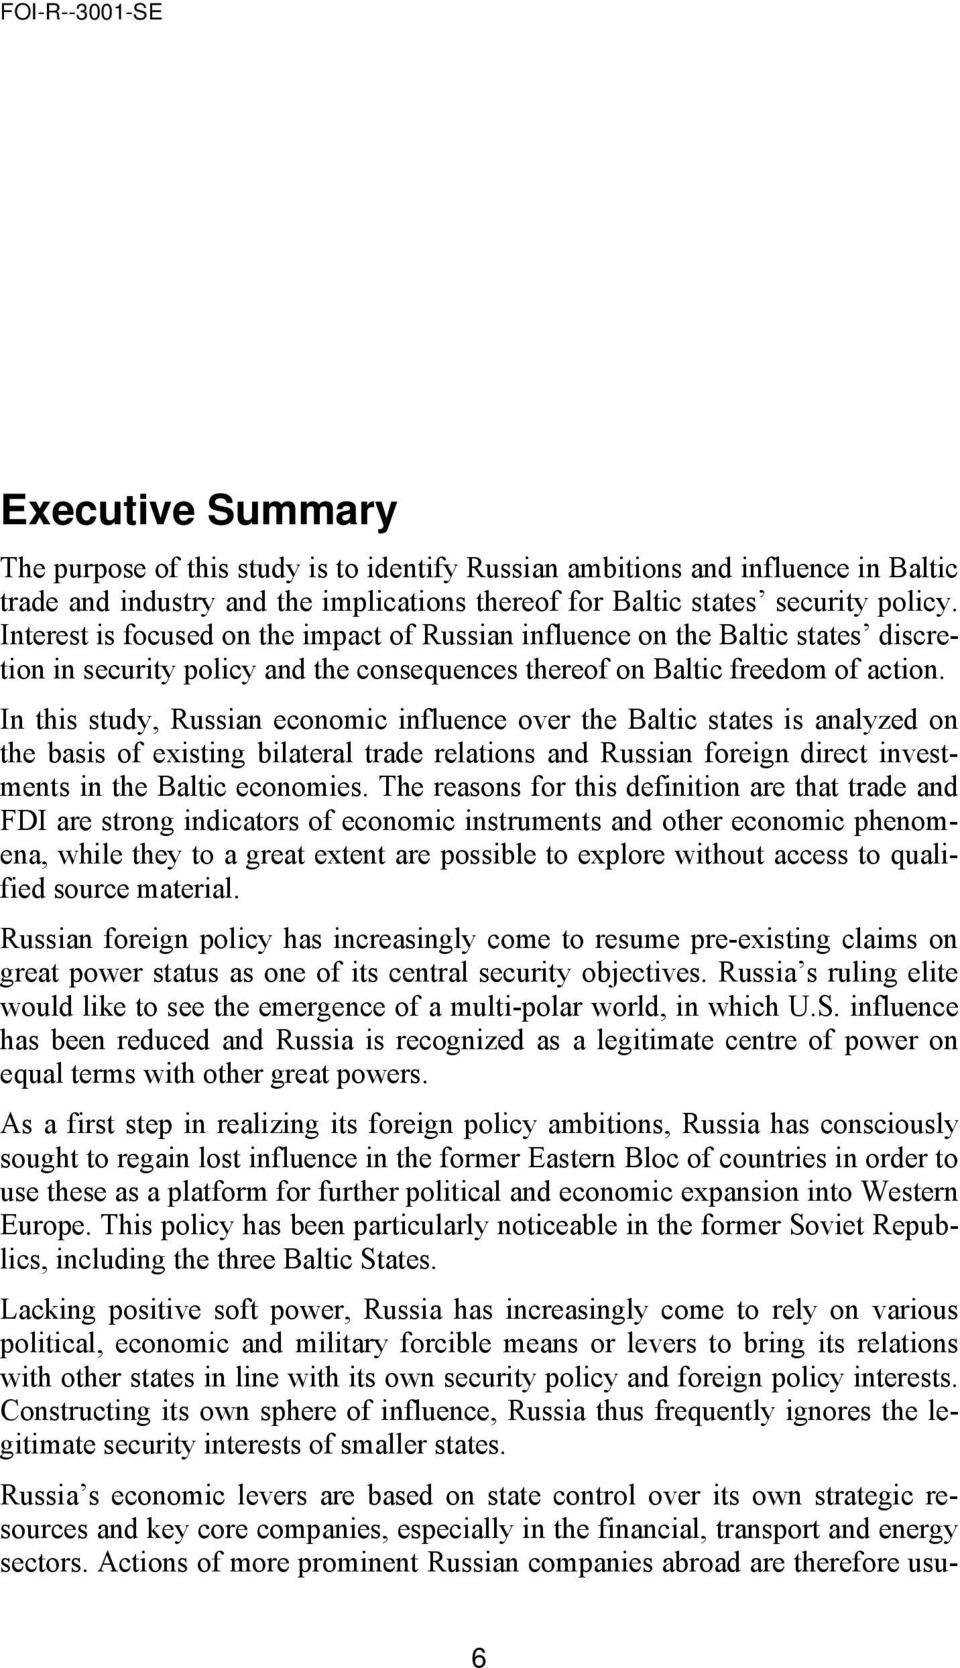 In this study, Russian economic influence over the Baltic states is analyzed on the basis of existing bilateral trade relations and Russian foreign direct investments in the Baltic economies.